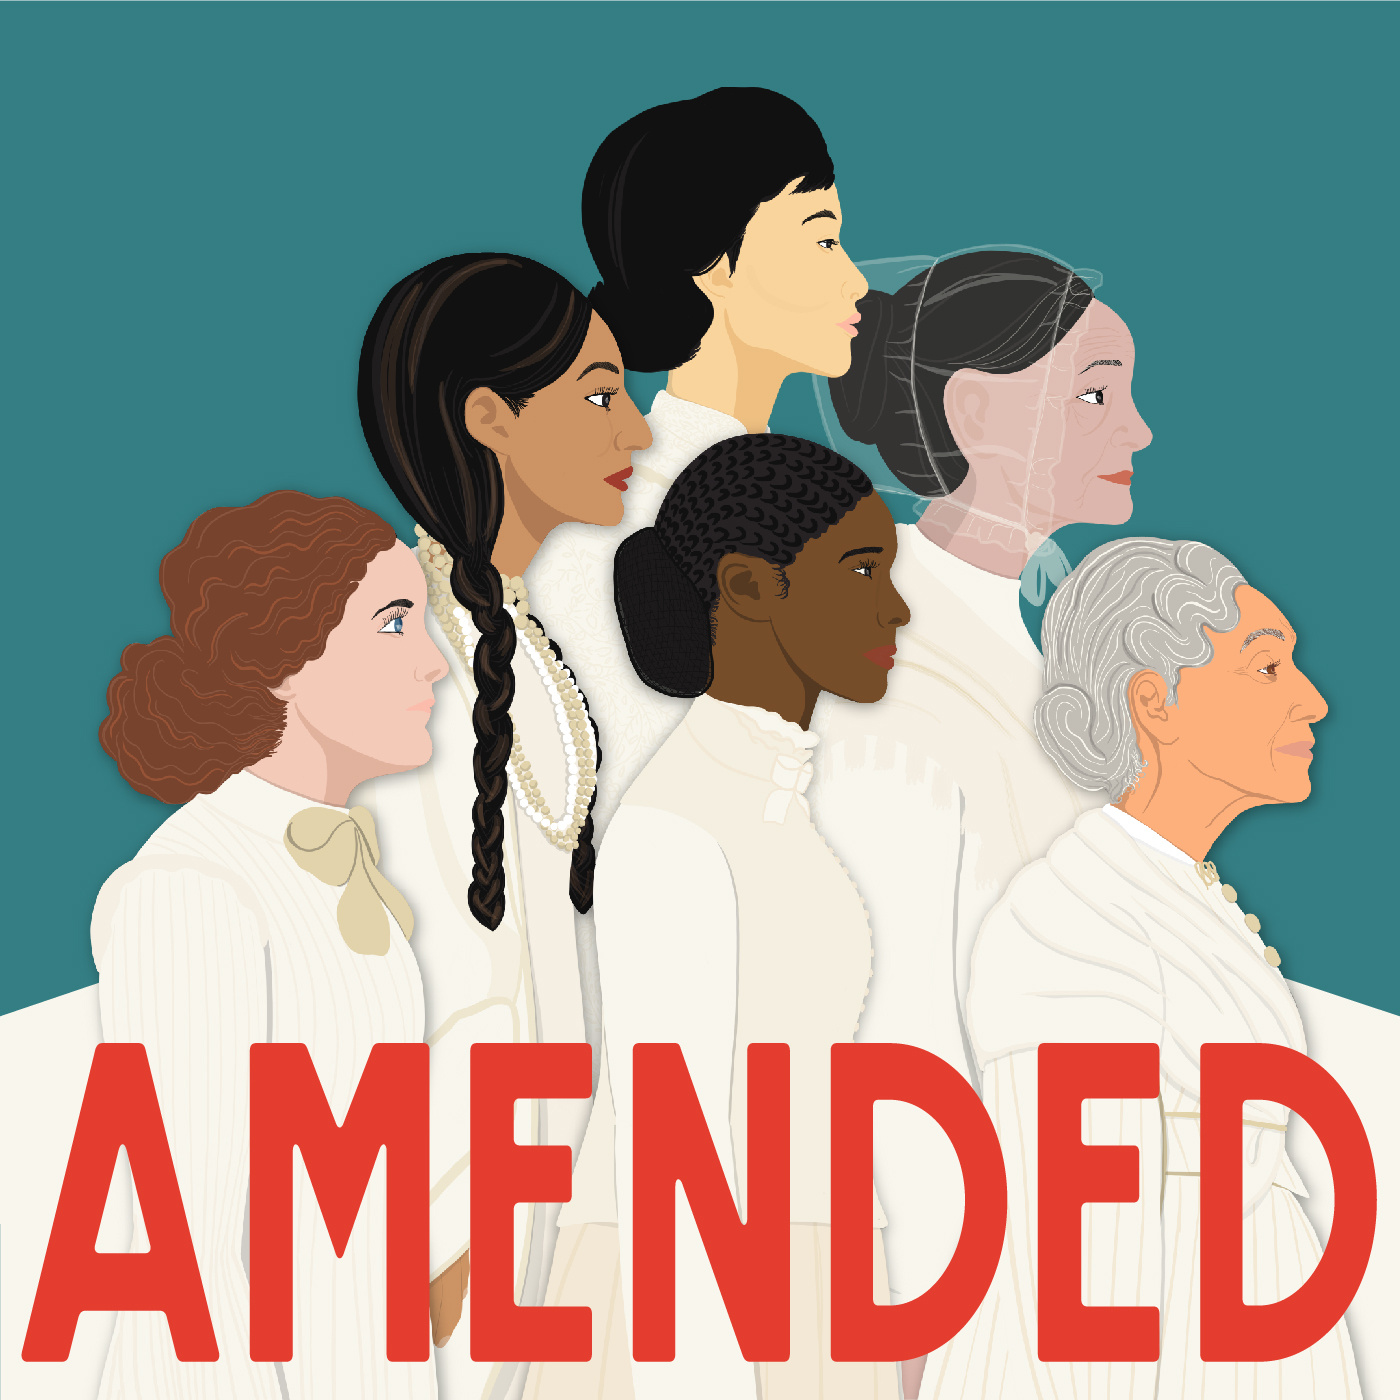 Amended podcast, featuring suffrage and women's history